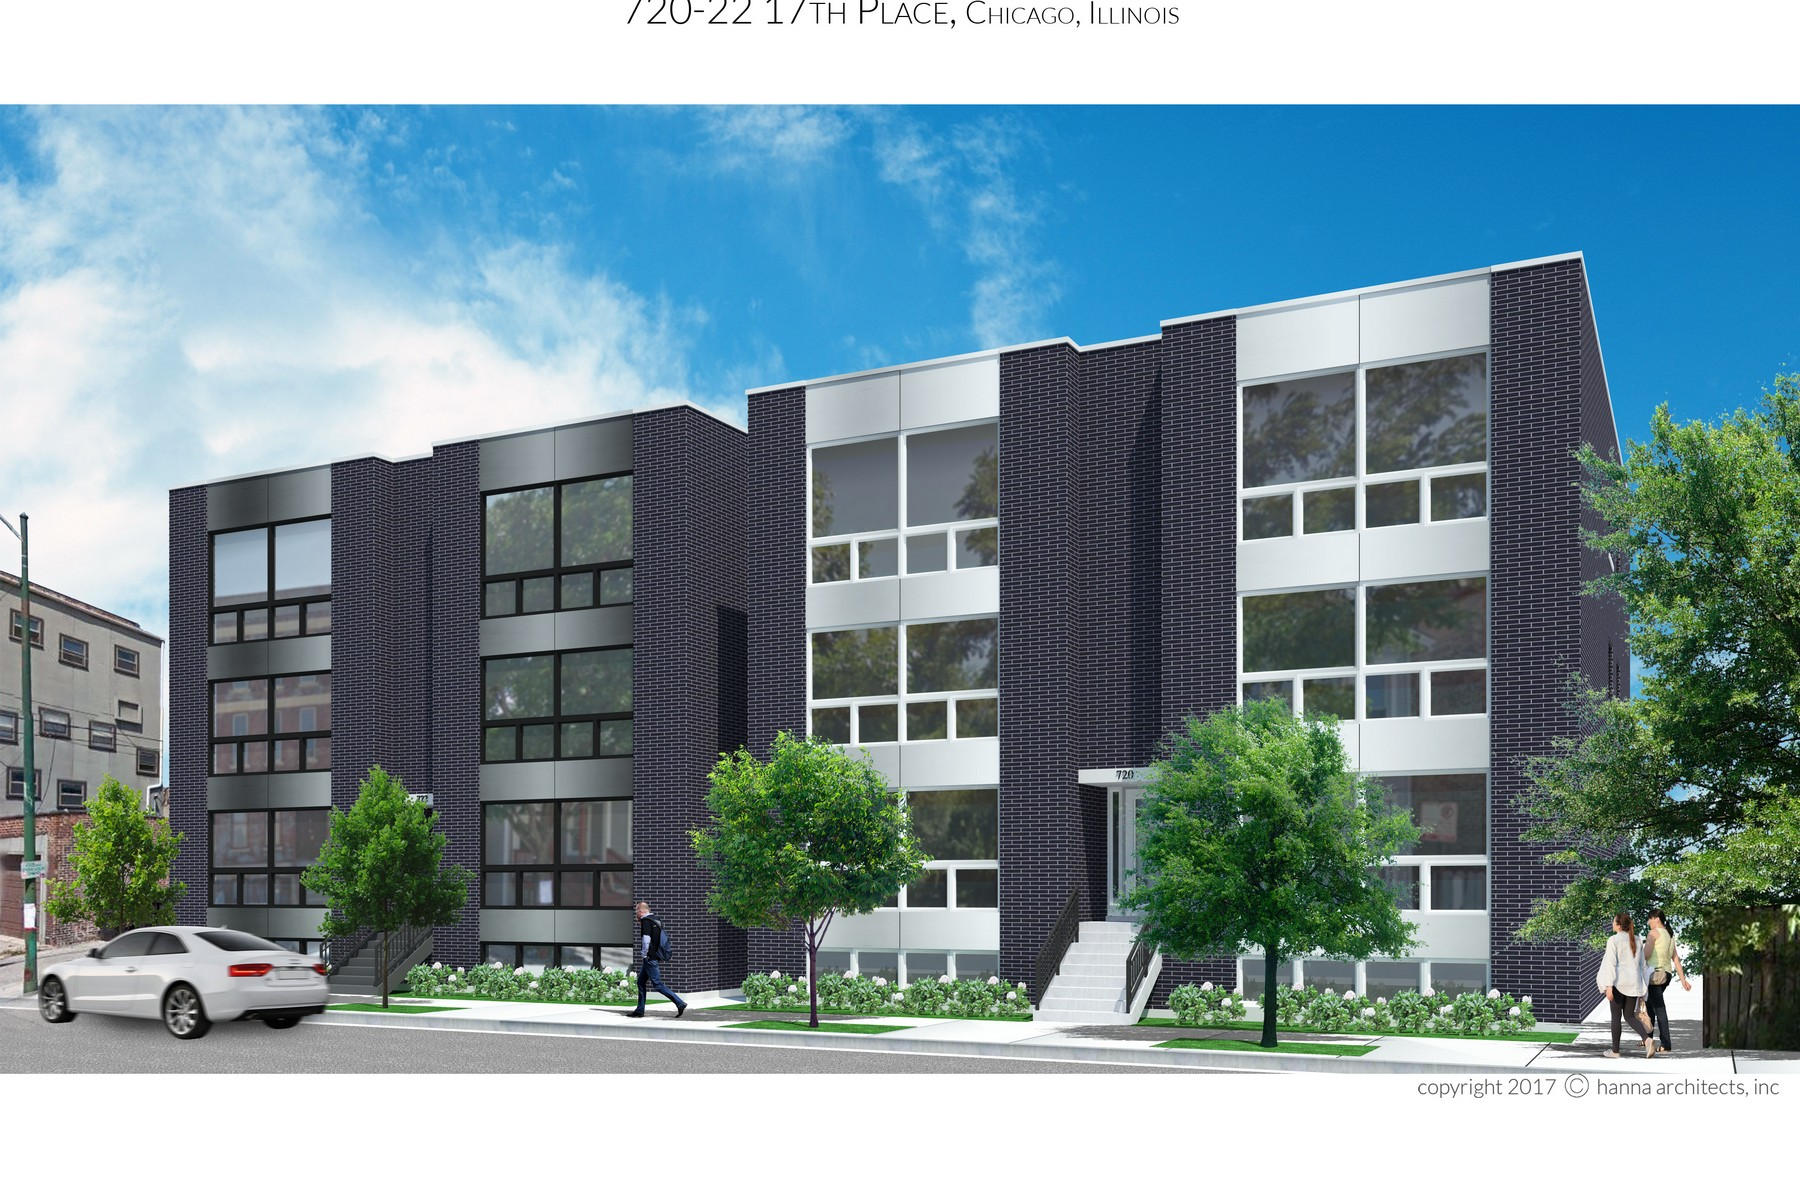 Condominium for Sale at New Construction Six-Unit Building 722 W 17th Place West Unit 1W, Chicago, Illinois, 60616 United States